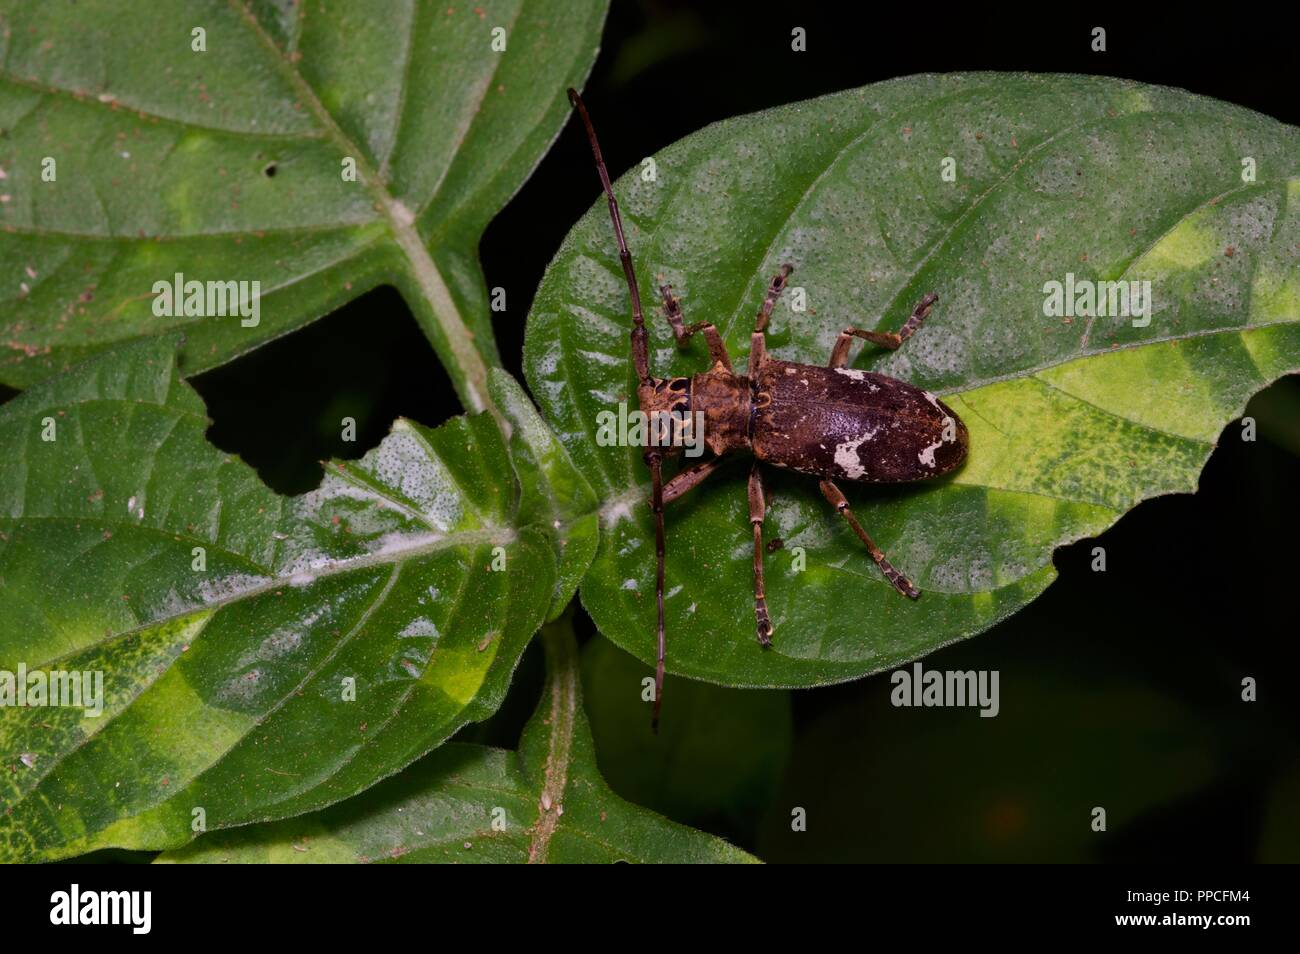 A long-horned beetle (Pseudhammus occipitalis) on a leaf at night in Bobiri Forest Reserve, Ghana, West Africa - Stock Image